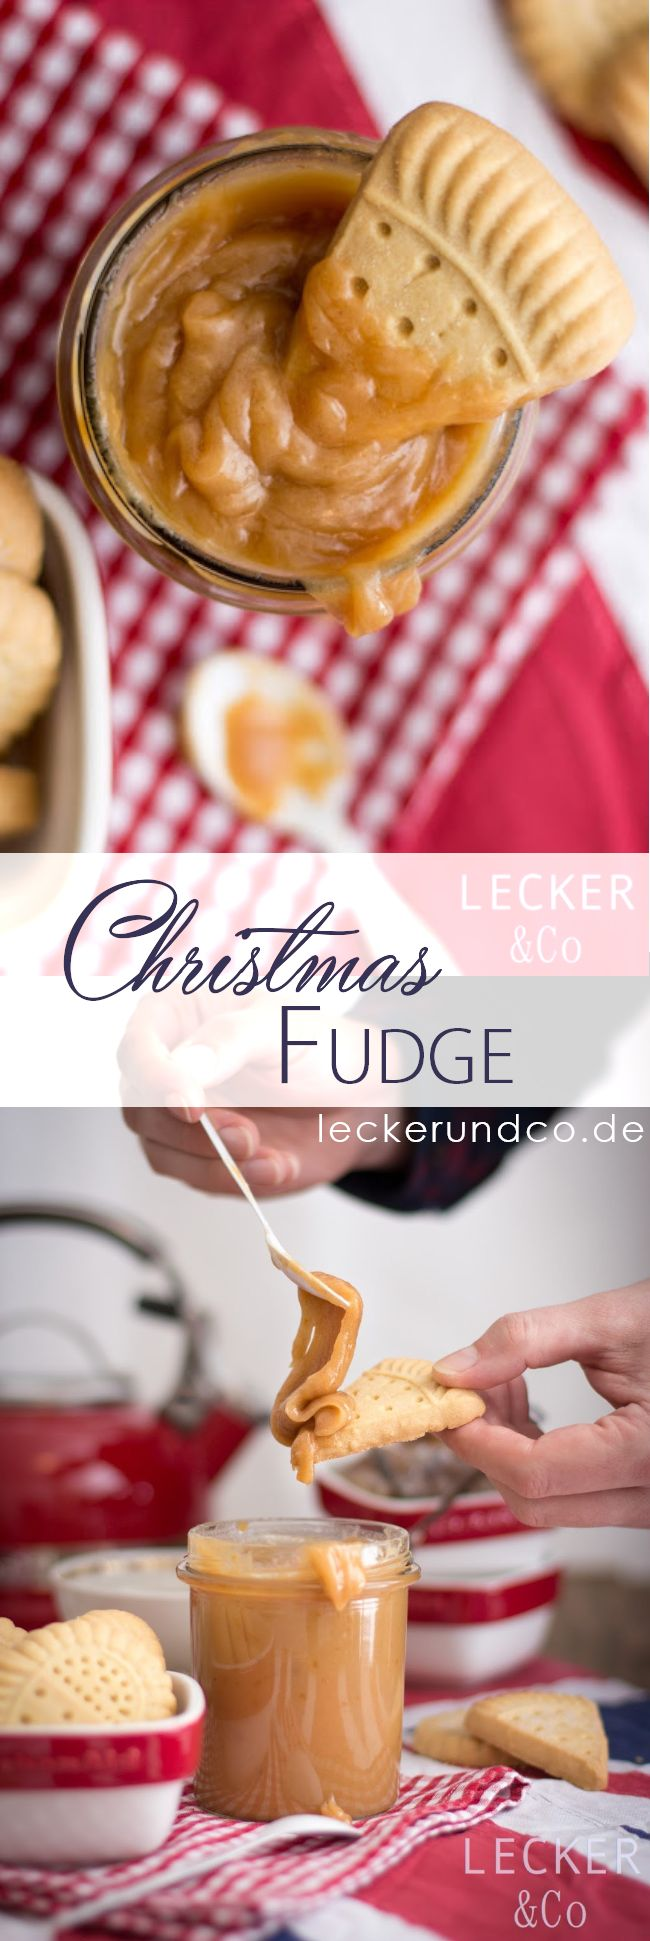 Christmas Fudge mit Zimt und Orange